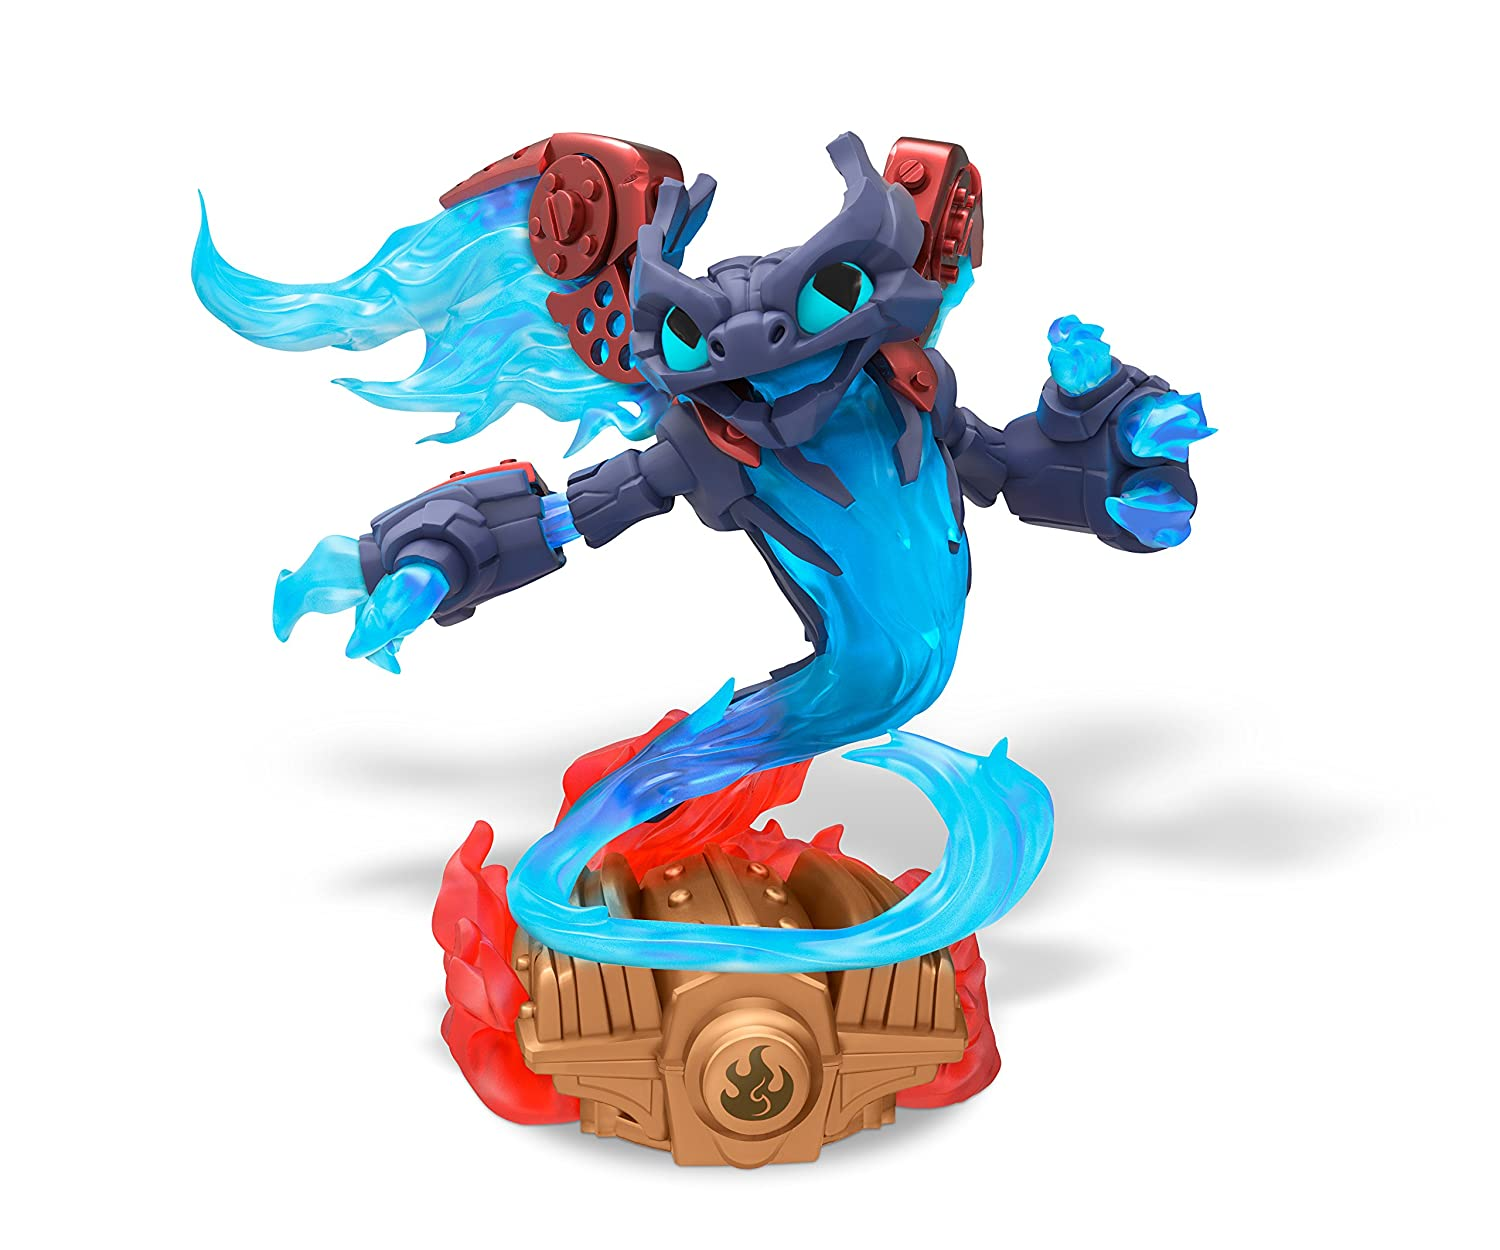 skylanders superchargers starter pack for ipad iphone ipod touch amazoncouk pc video games